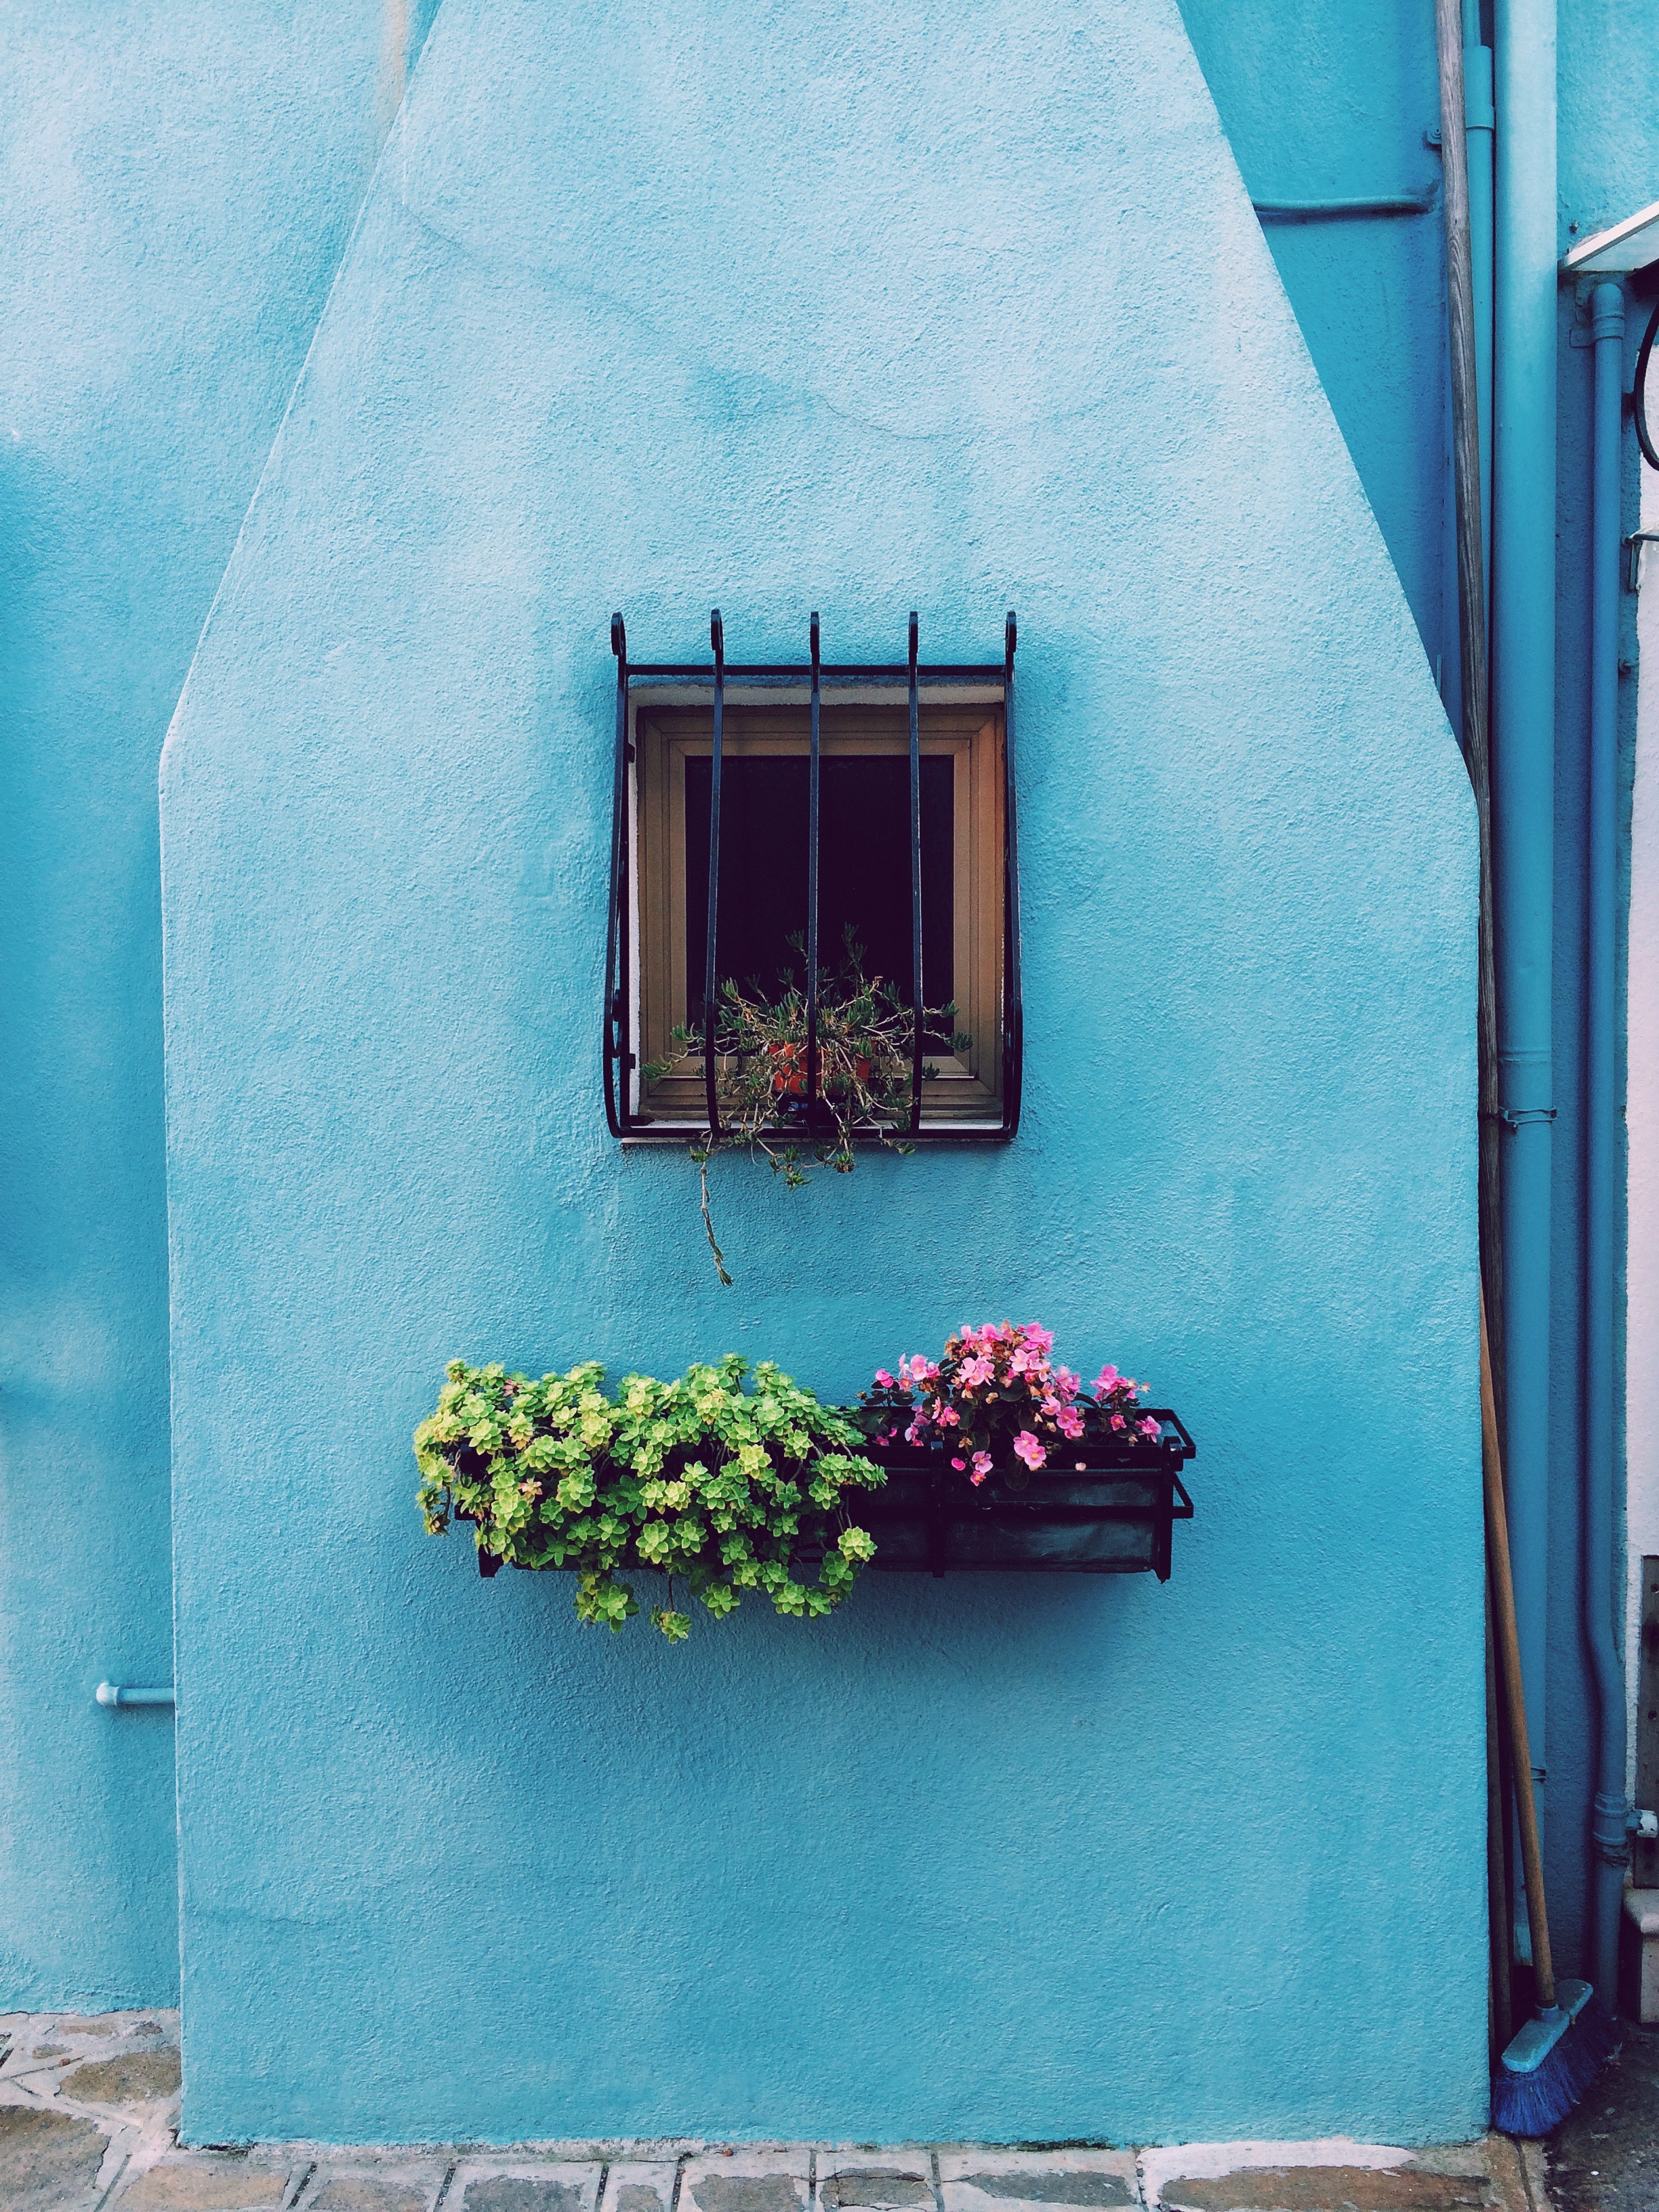 Free Girl Wallpaper Window Flower Blue And Wall Hd Photo By Paula Borowska